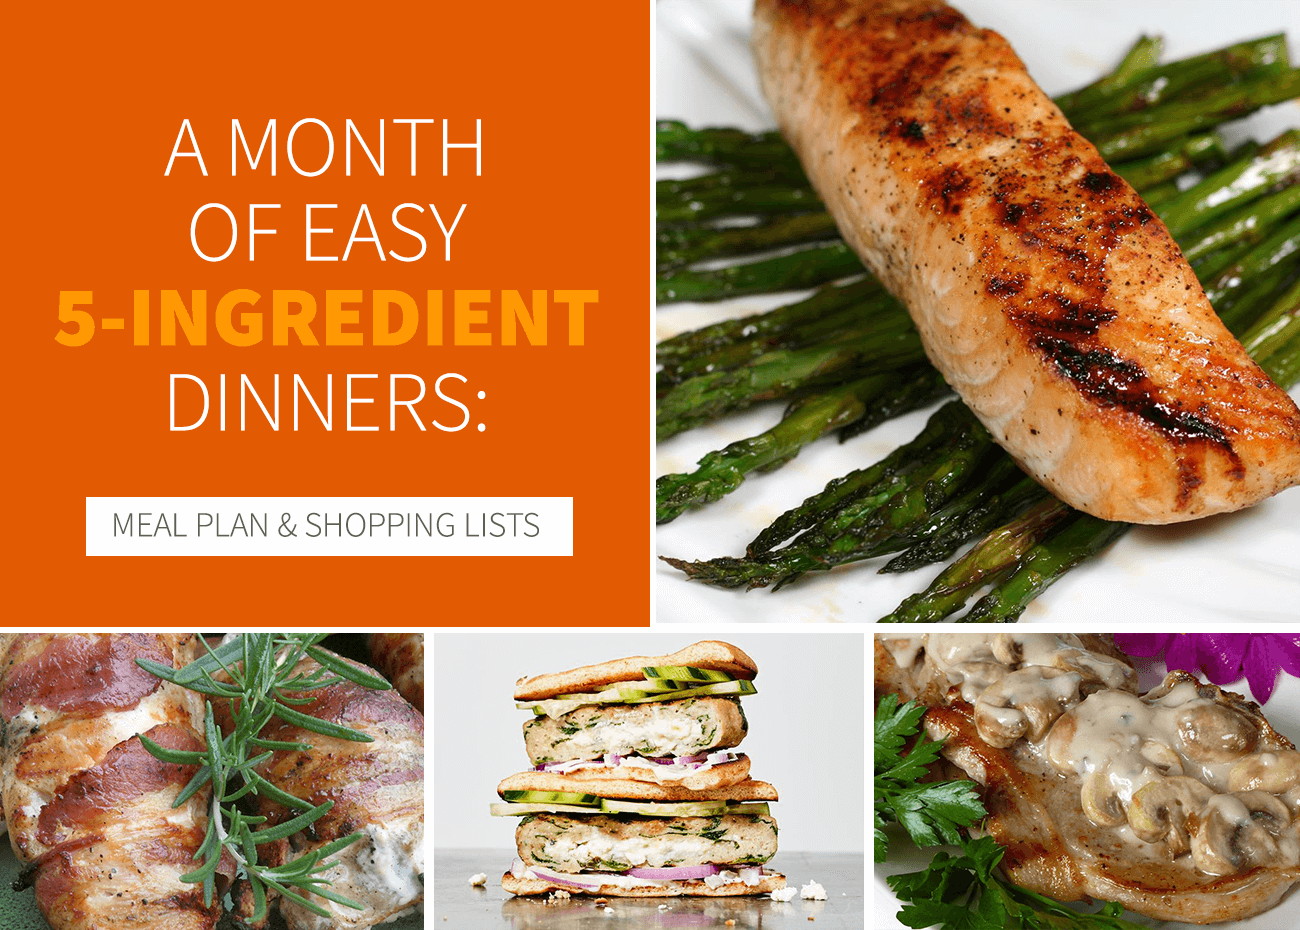 Easy 5-Ingredient Dinners